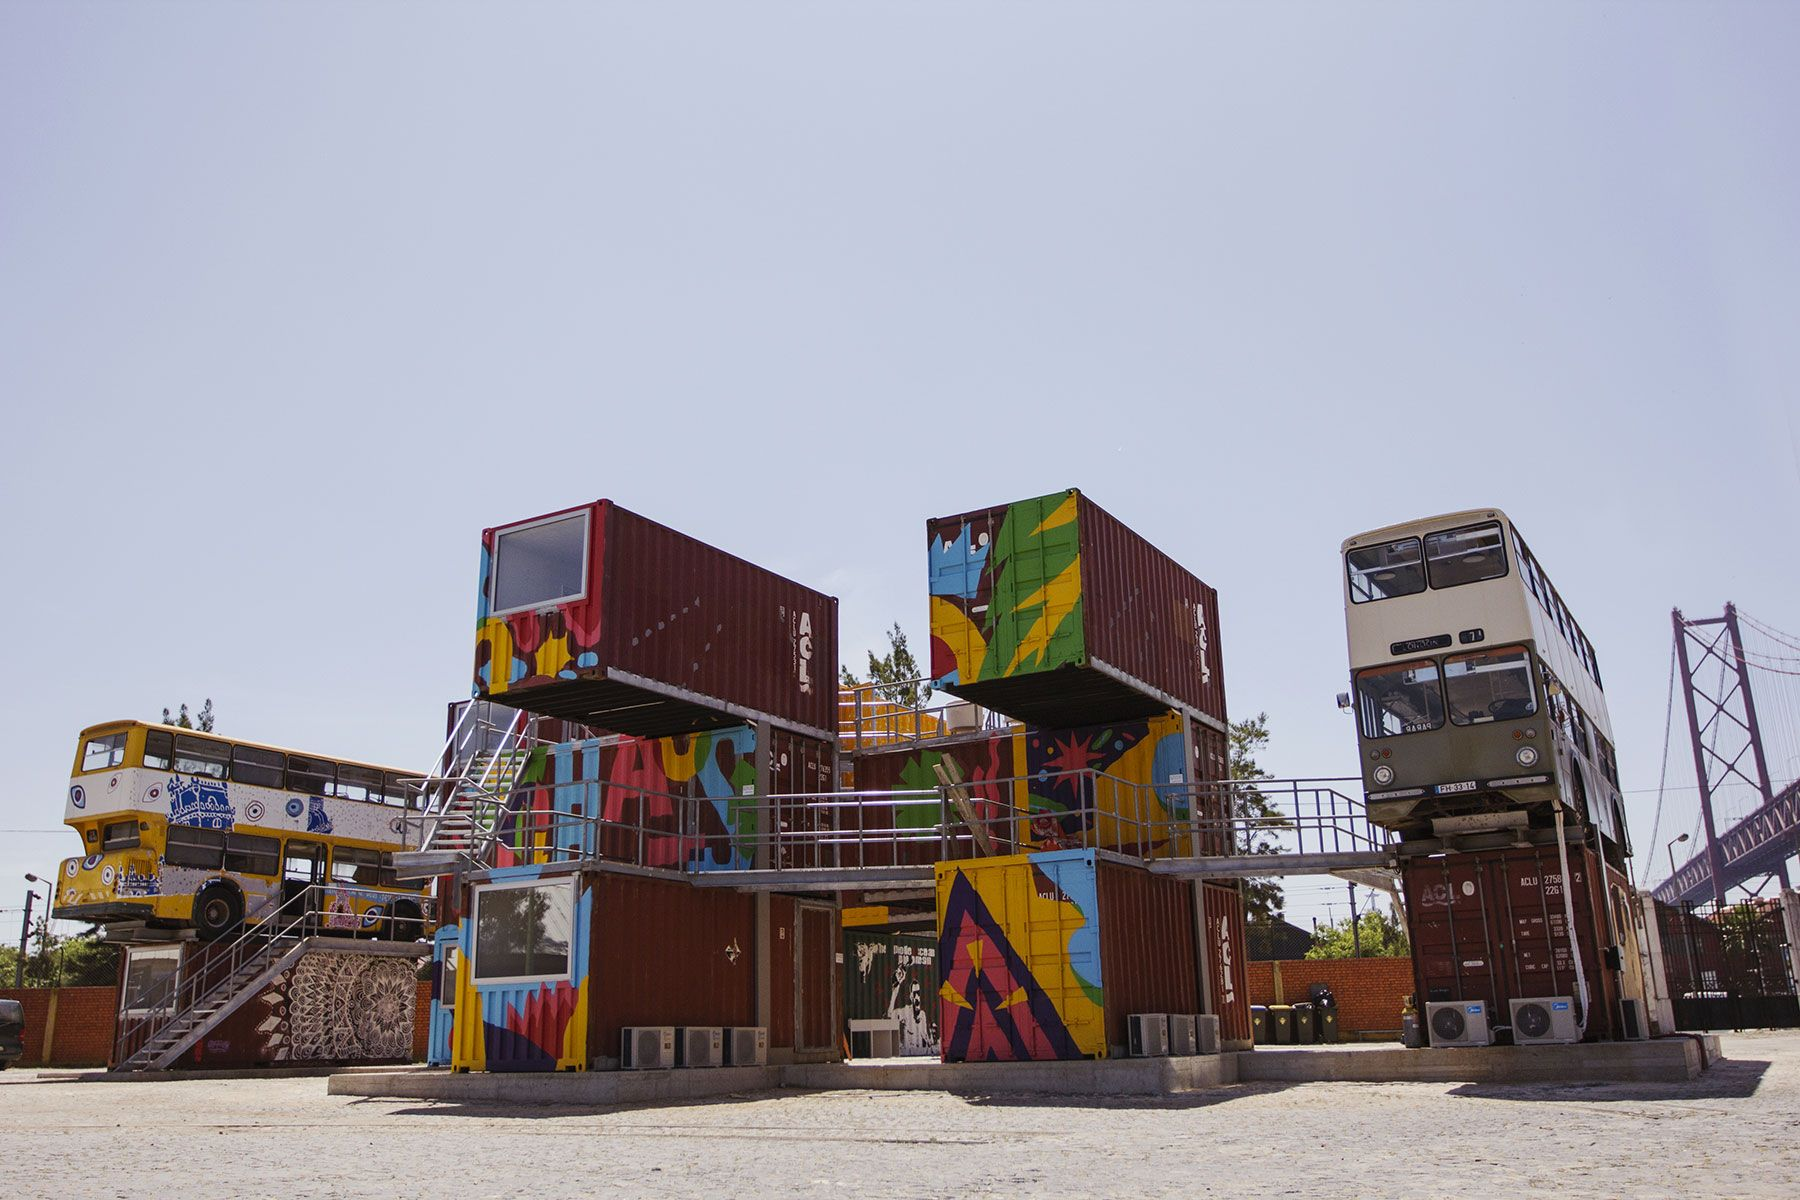 Village Underground, cowork space, Lisboa, by  João Cassiano Santos, Joana Astolfi #architecture #workspace #design #reuse #recycling #democraticdesign #container #lisboa #portugal